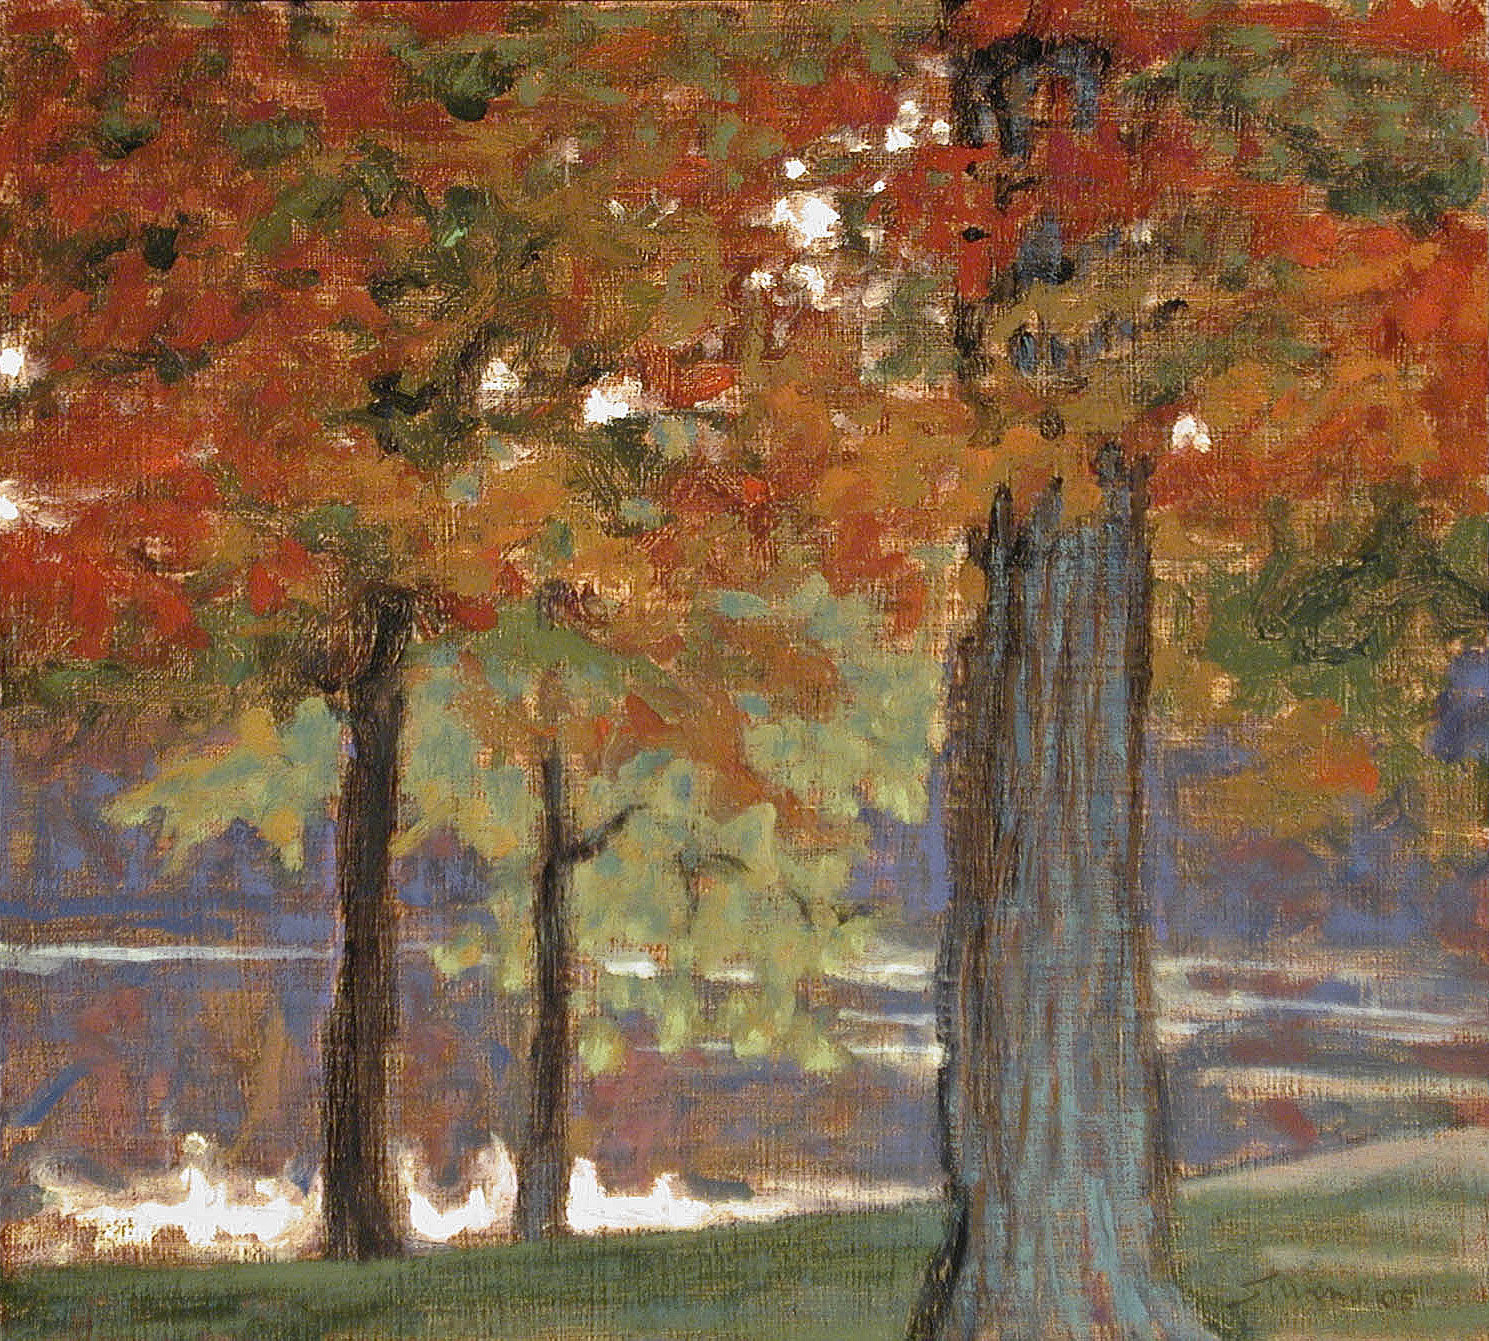 Dusk at the Lake, Autumn   | oil on linen | 12 x 13"